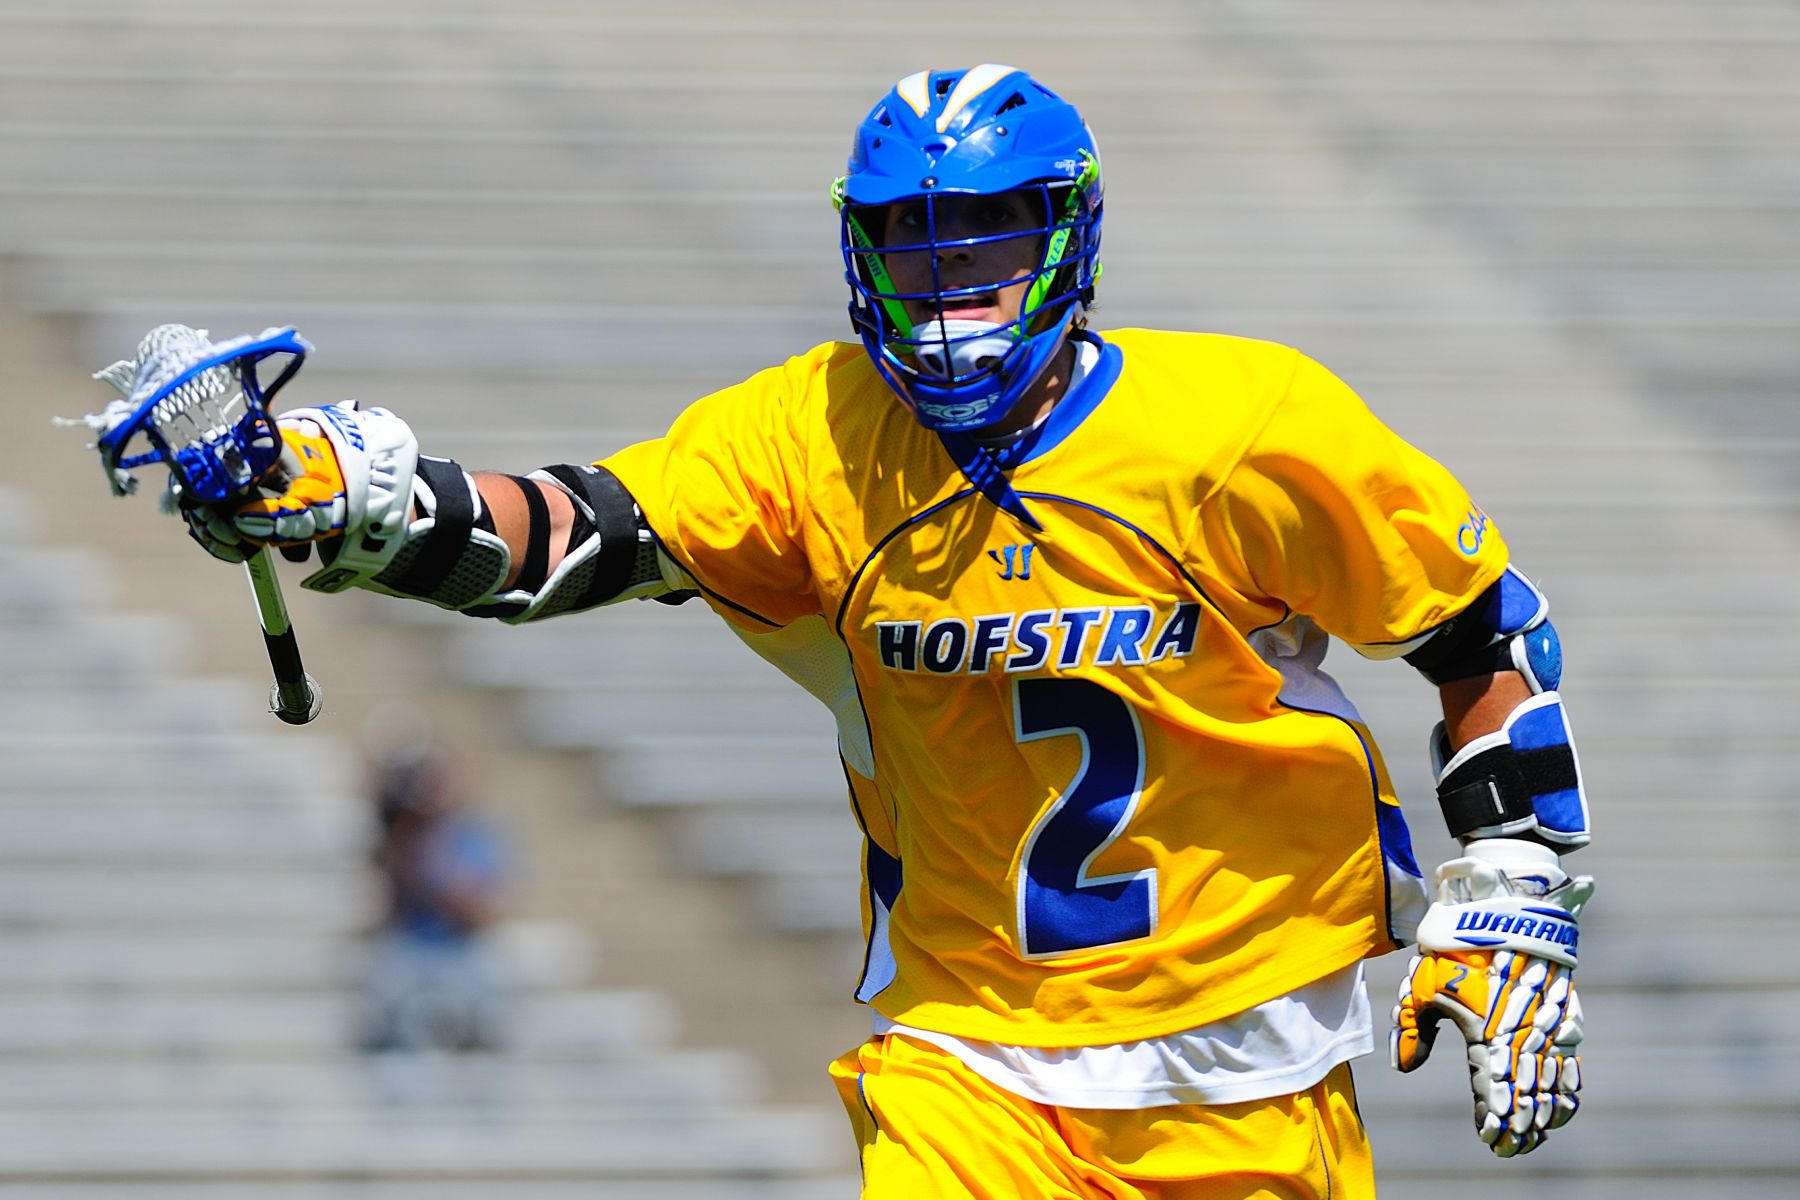 NCAA LACROSSE:  APR 14 Hofstra vs North Carolina